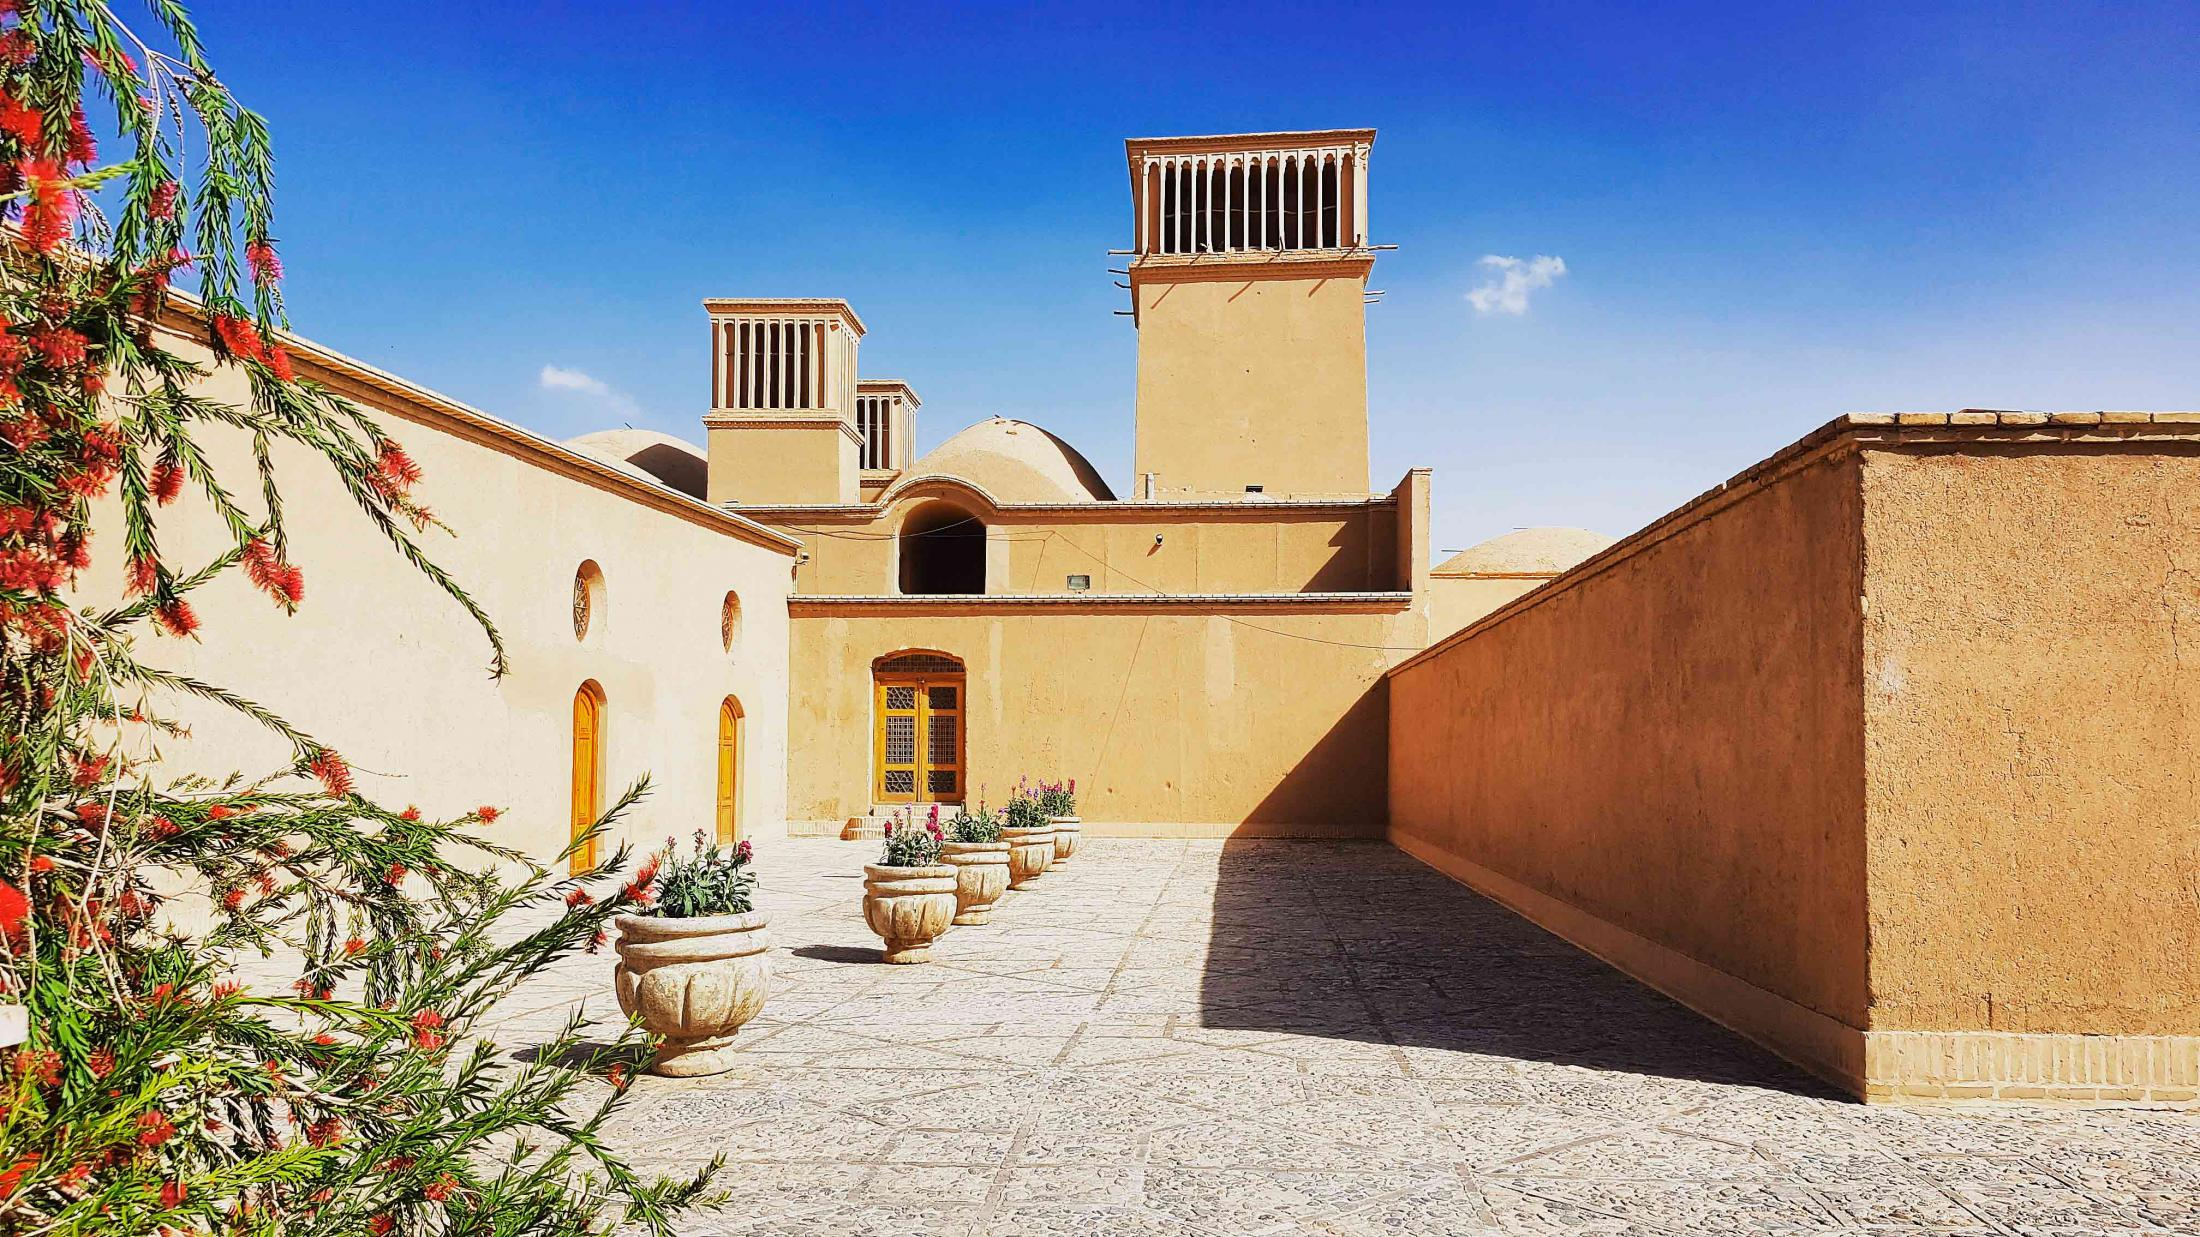 dolat abad garden, #yazd. located in the deserts of Iran close to the spice and silk roads, it is a living testimony to use of limited available resources in the desert for survival. water is brought to the city by the qanat system. buildings are built of earth.